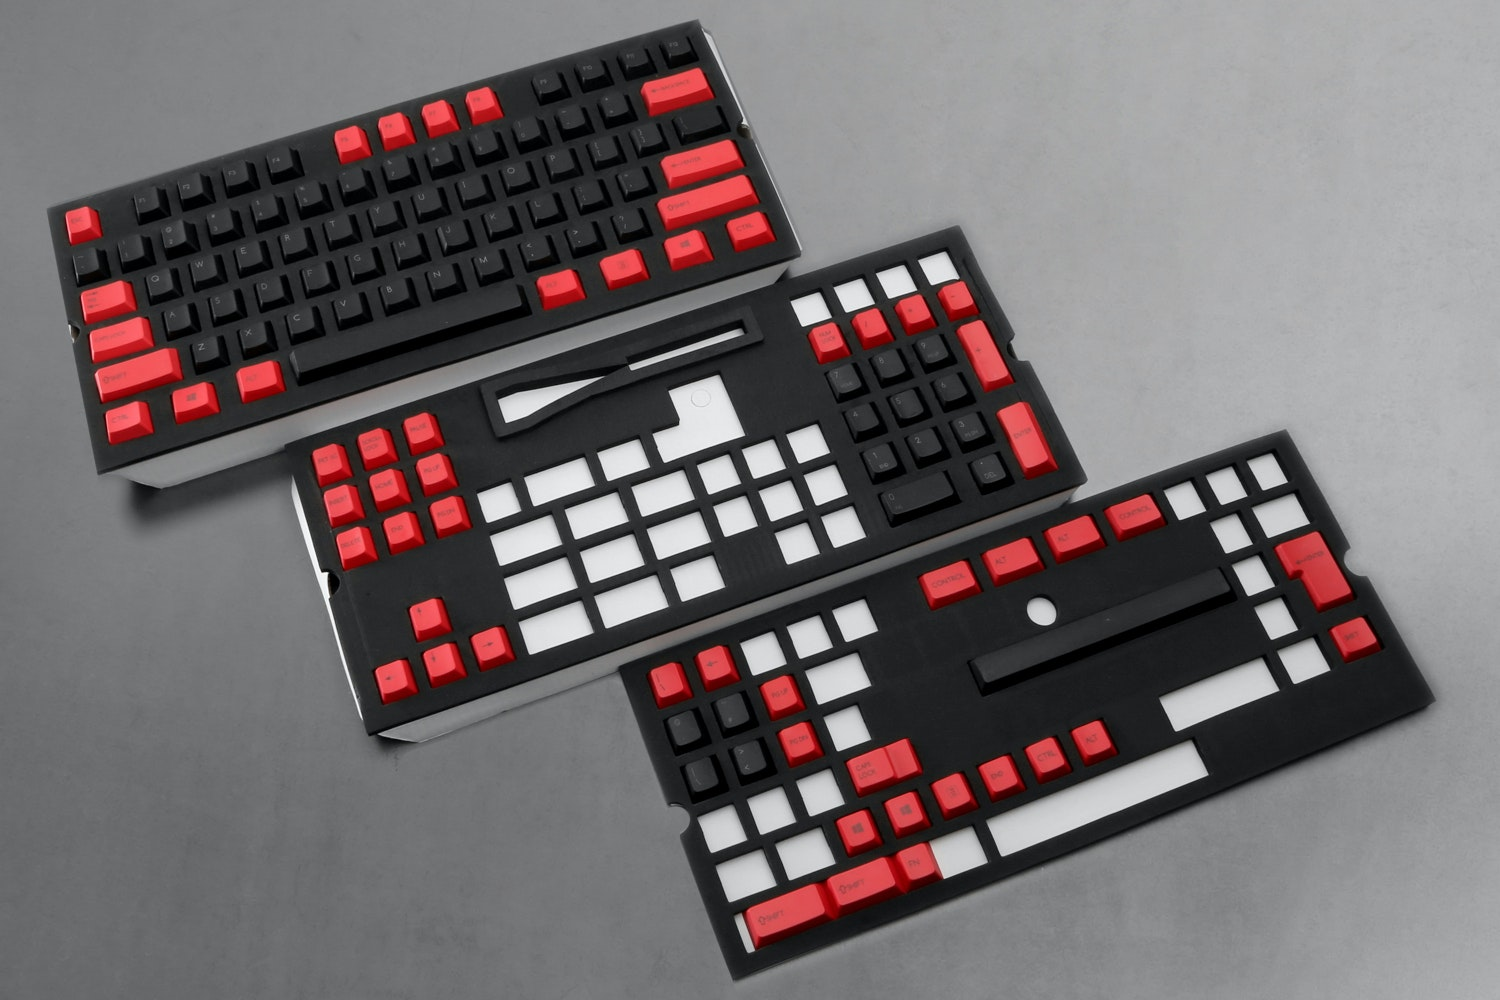 129-Key Top Printed PBTCherry Keycap Set - Red/Black (+ $25)